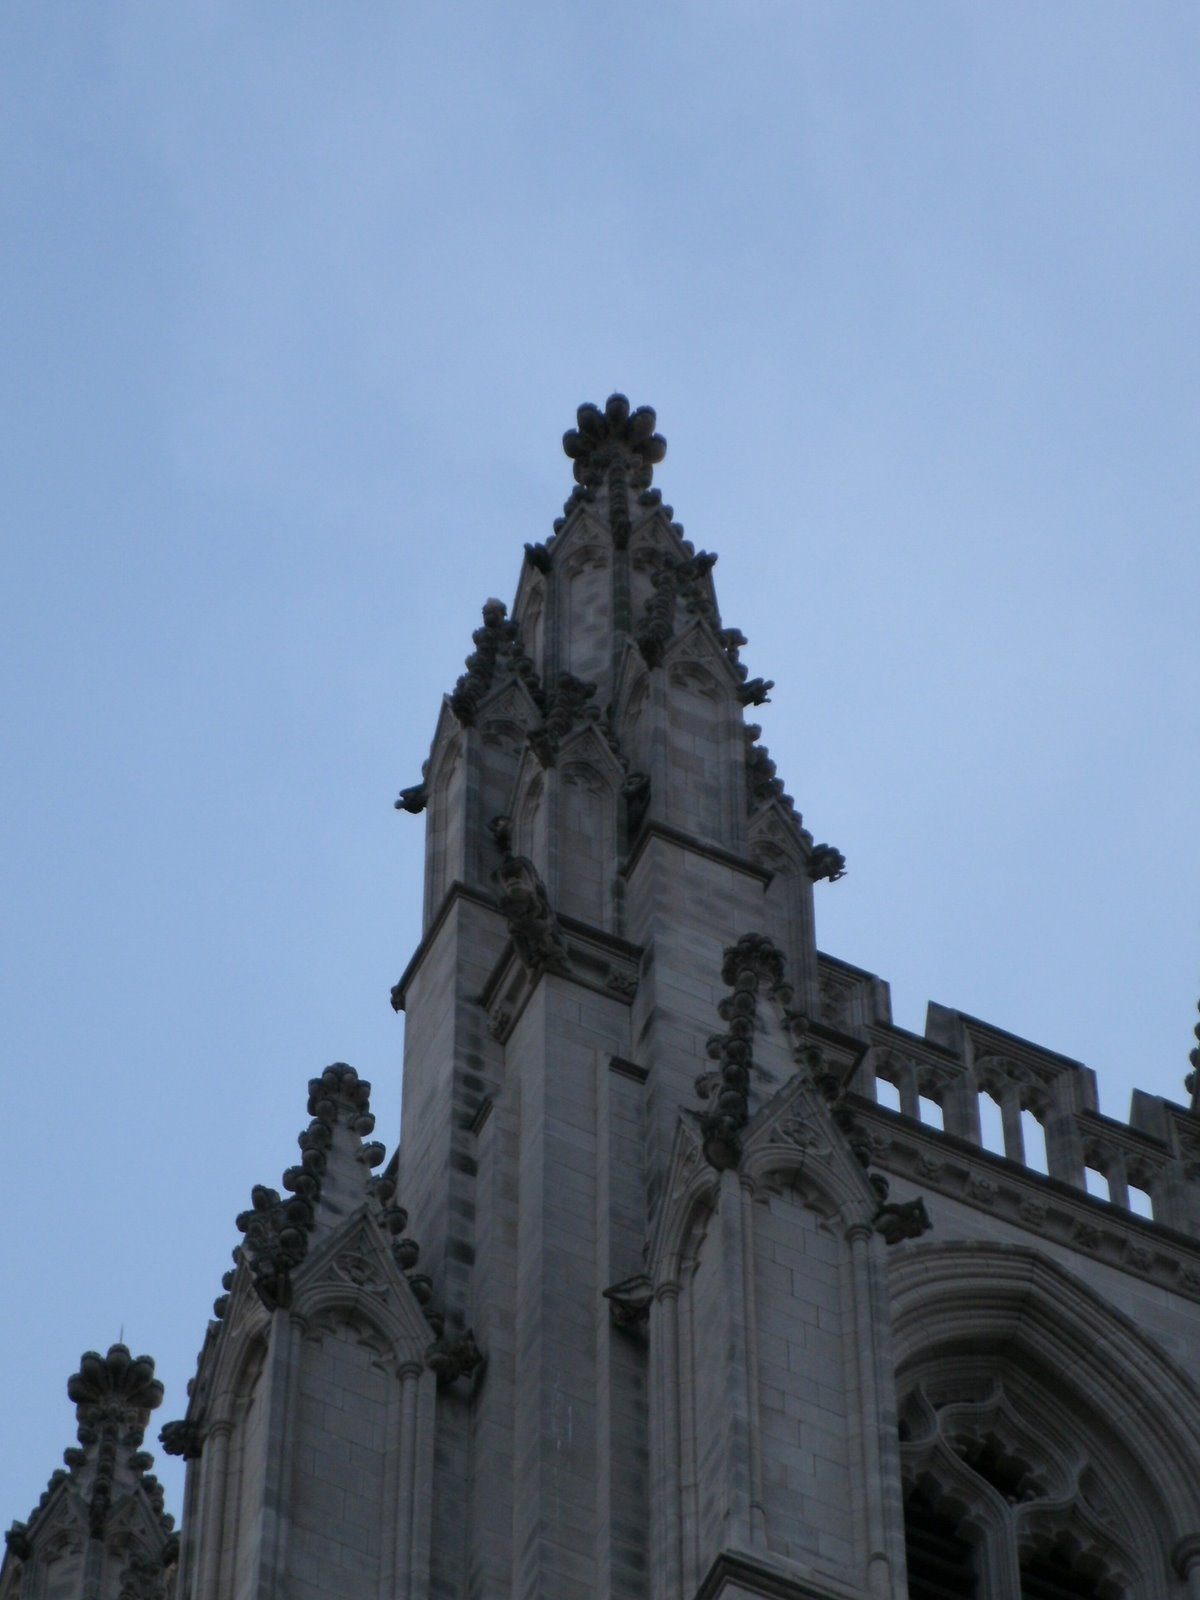 National Cathedral, Washington, U.S.A., Tower architecture detail